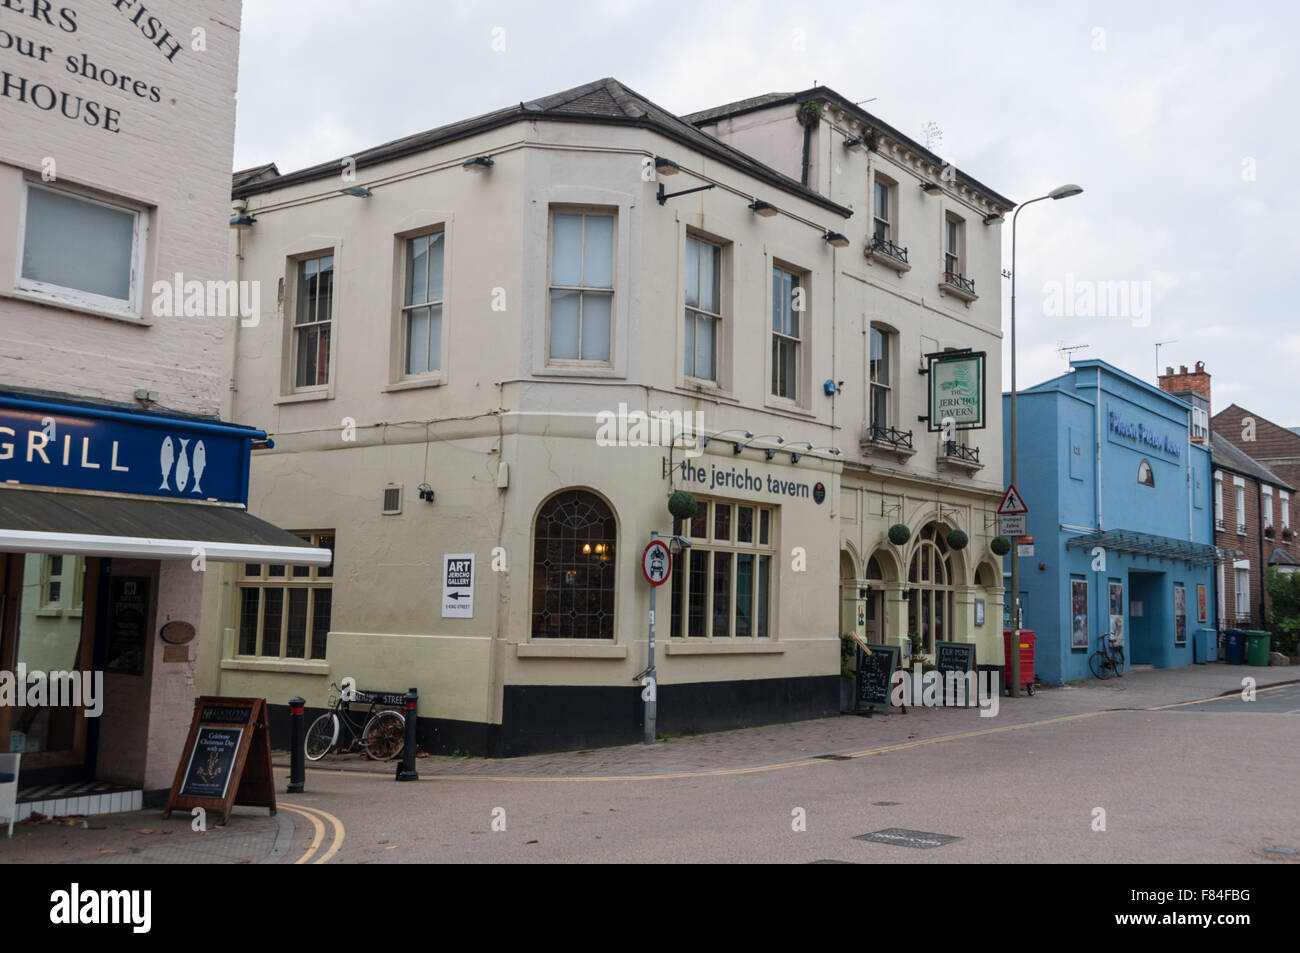 The Jericho Tavern and Phoenix Picture House, Oxford, United Kingdom - Stock Image